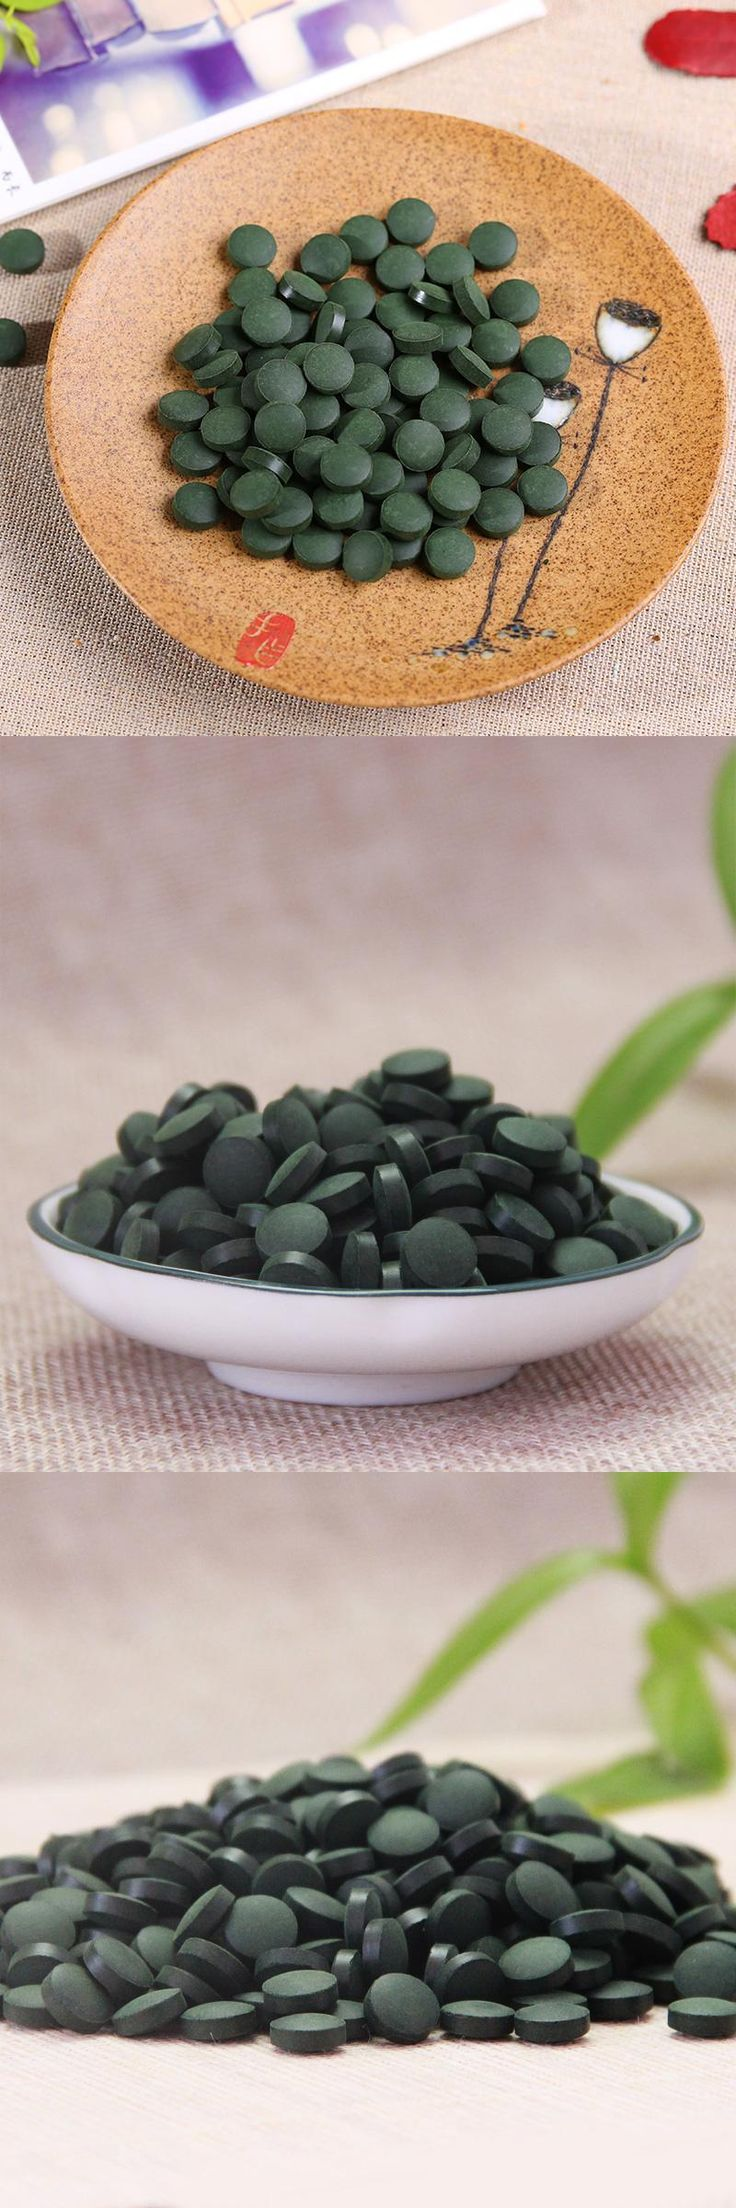 [Visit to Buy] Health Food 1000 Pills Quality Approved Anti-fatigue Anti-radiation Enhance-immune 250g Green Natural Spirulina Health Tea #Advertisement